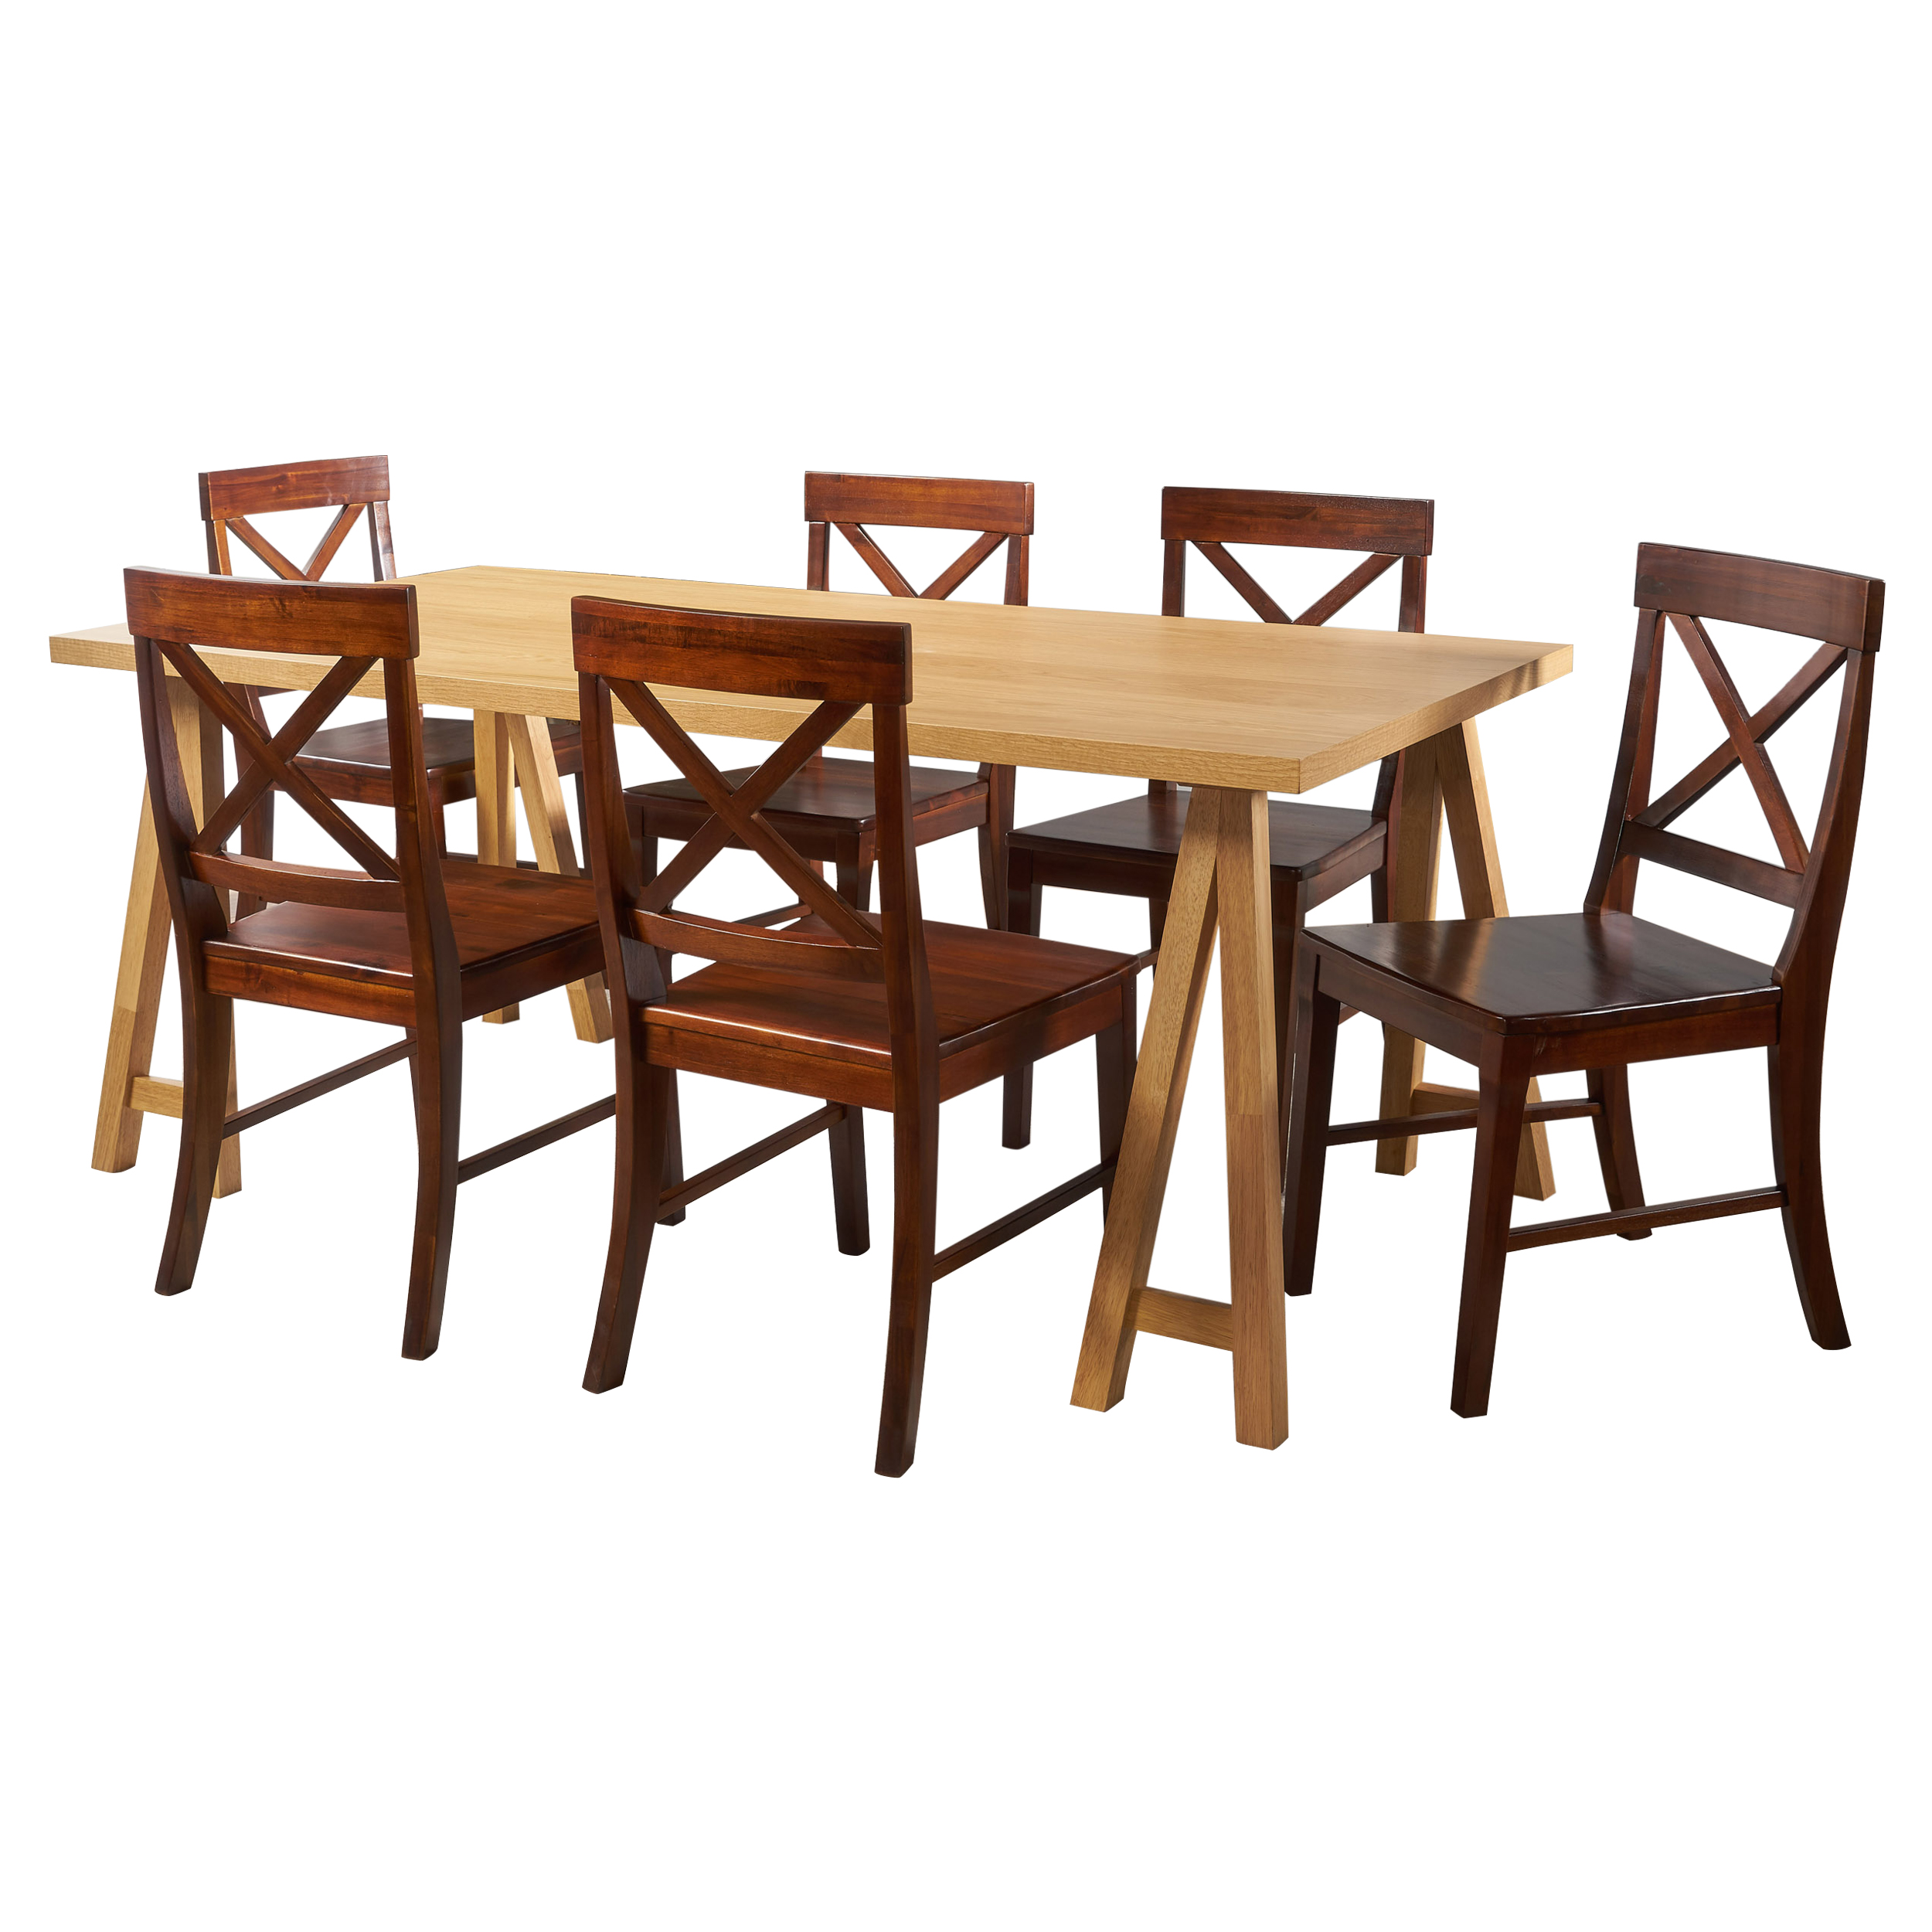 Sambora Farmhouse Natural Oak Dining Set with Dining Chairs, Rich Mahogany